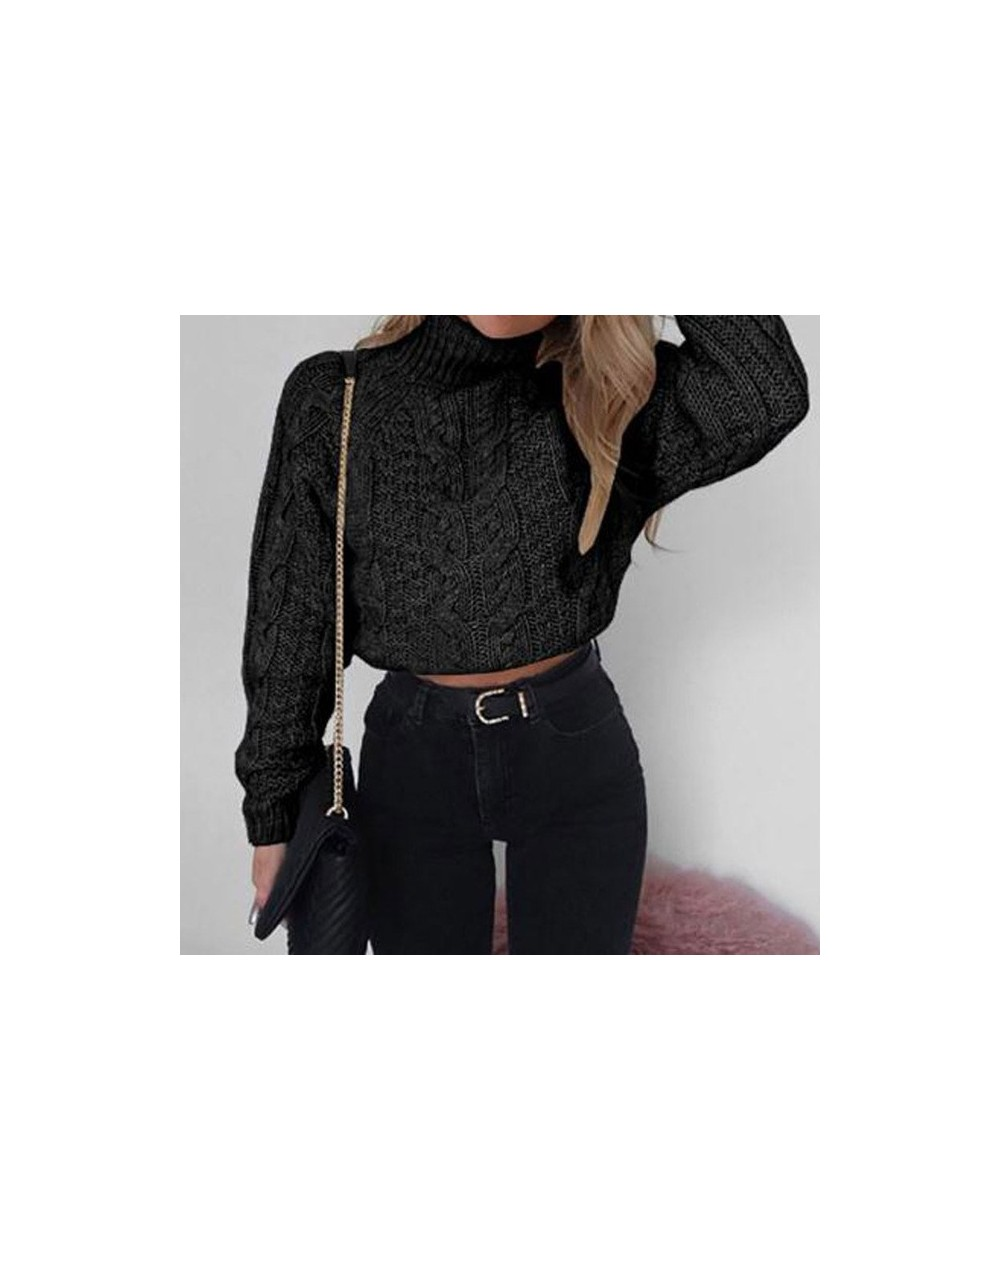 2019 Autumn Knitted Sweater Women High Neck Sweater Winter Pullover Short Sweater Knitted Turtleneck Warm Crop Sweaters Ladi...